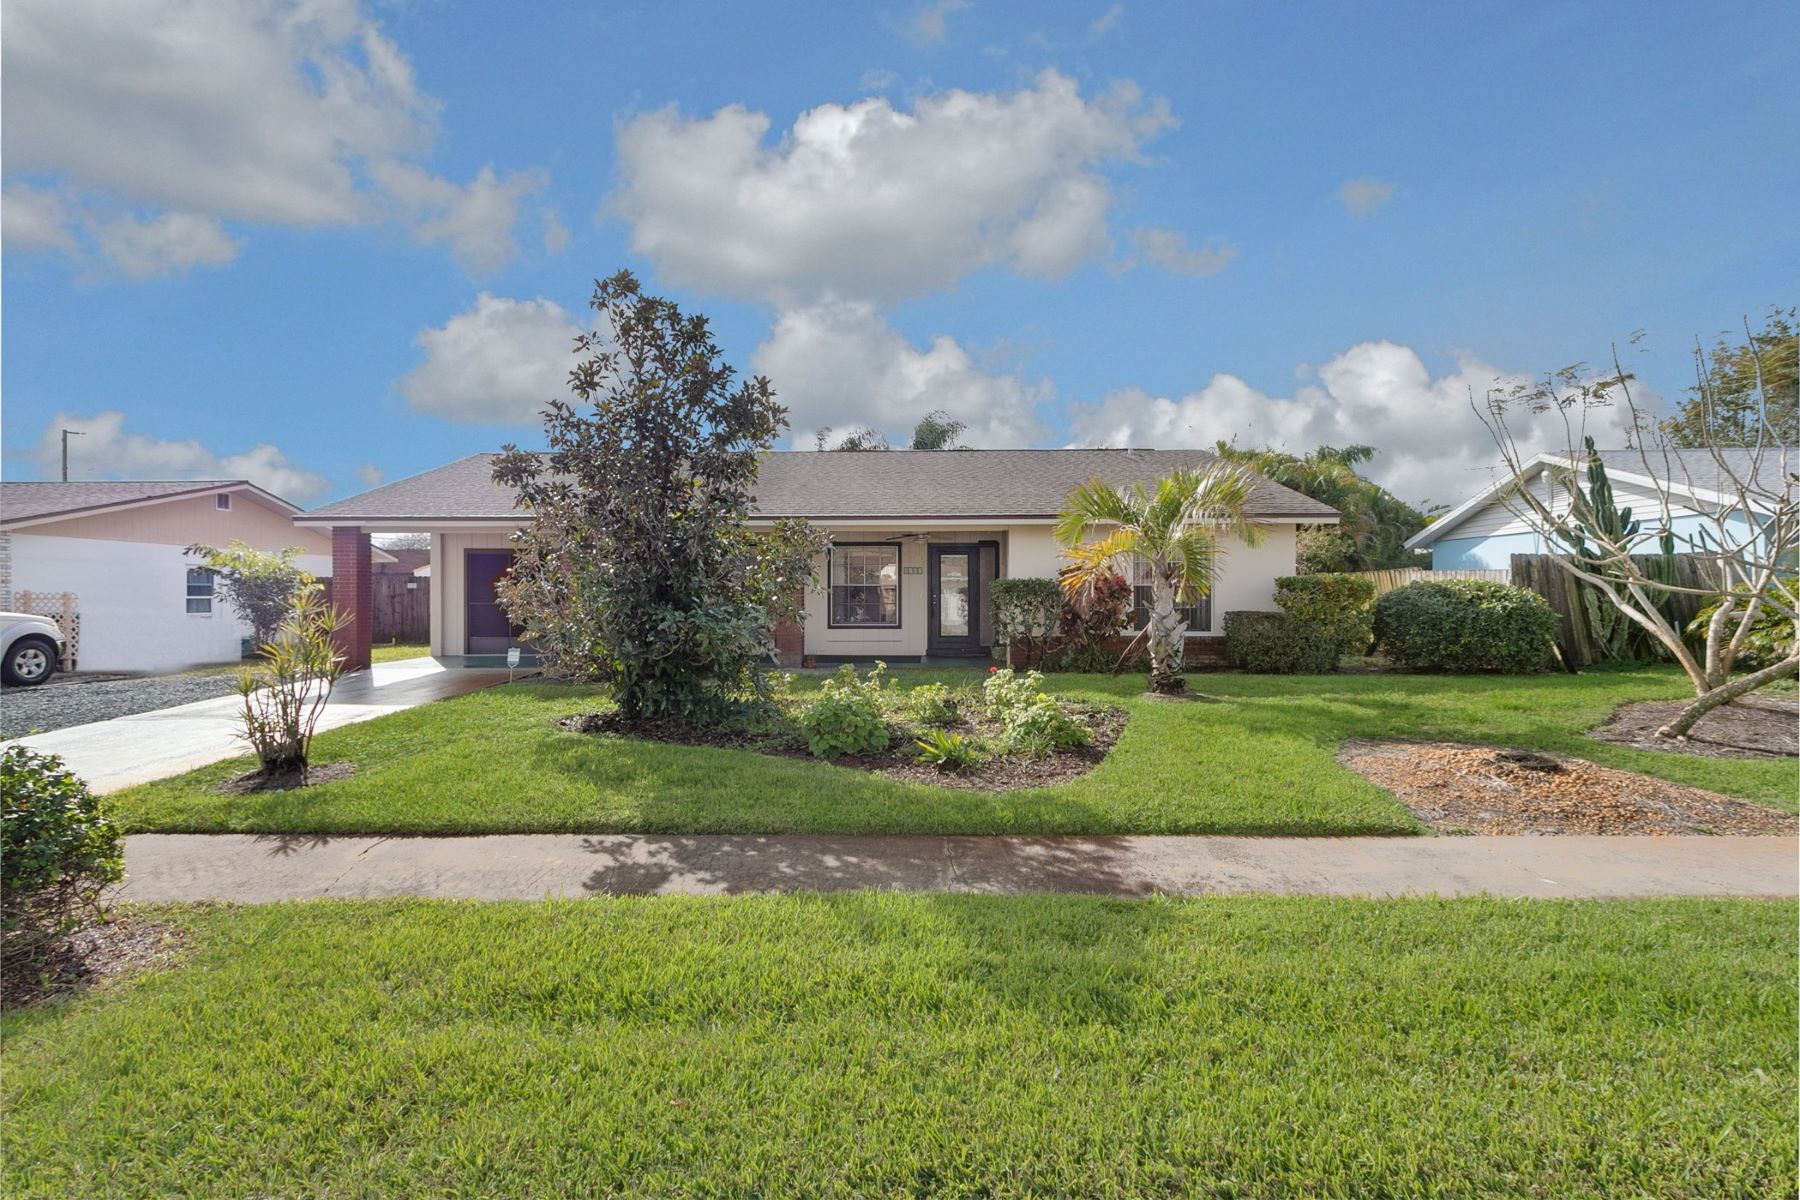 Single Family Homes for Sale at 3282 E Eastman Ne Avenue 3282 E Eastman Avenue Ne Palm Bay, Florida 32905 United States